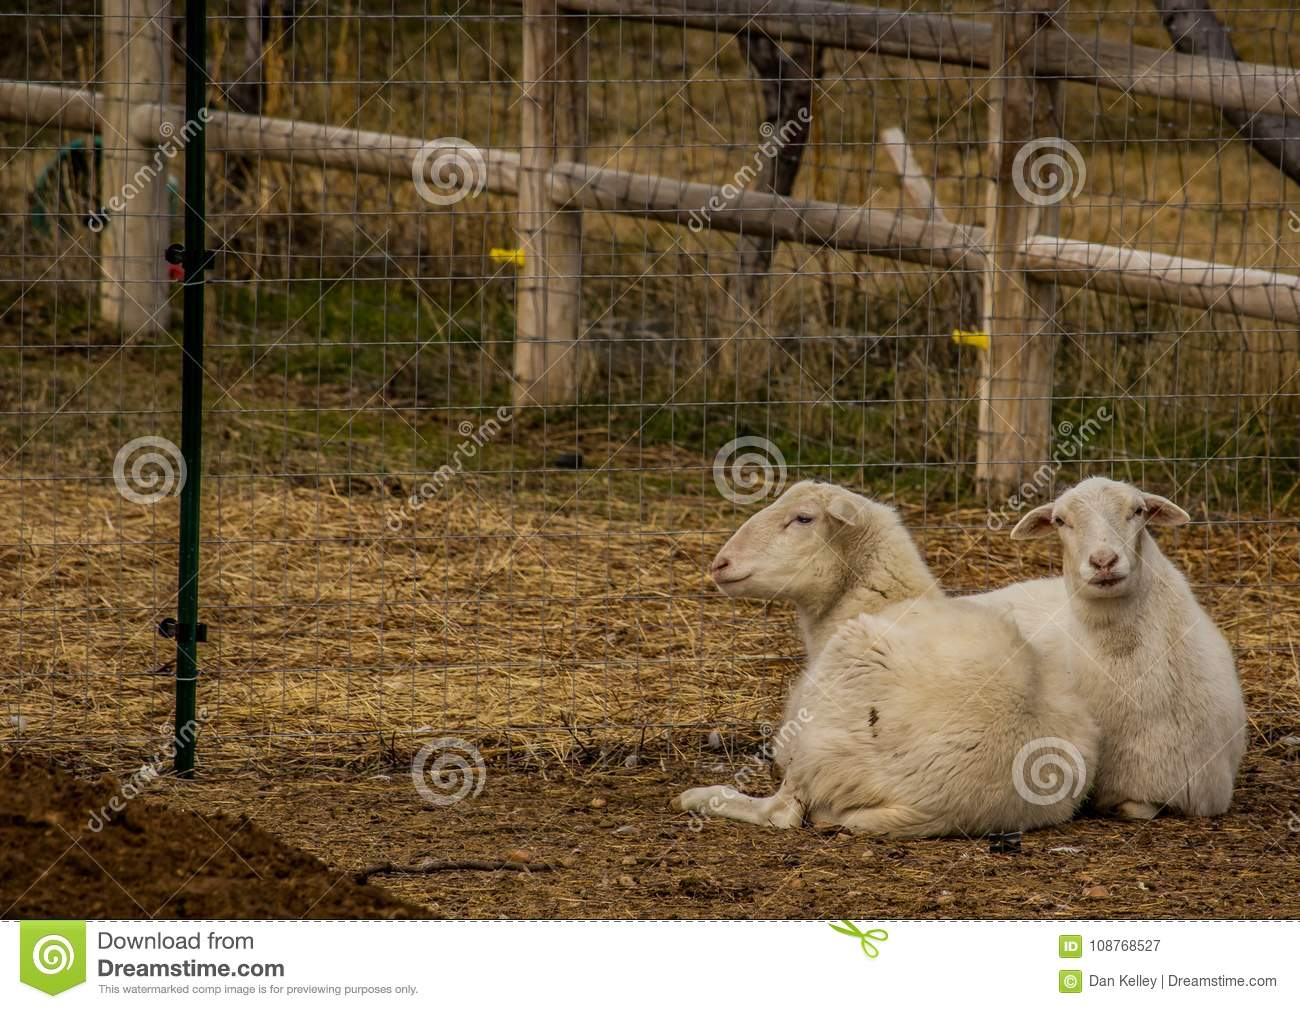 Hair Sheep In Pen In Boise Idaho Stock Image - Image of